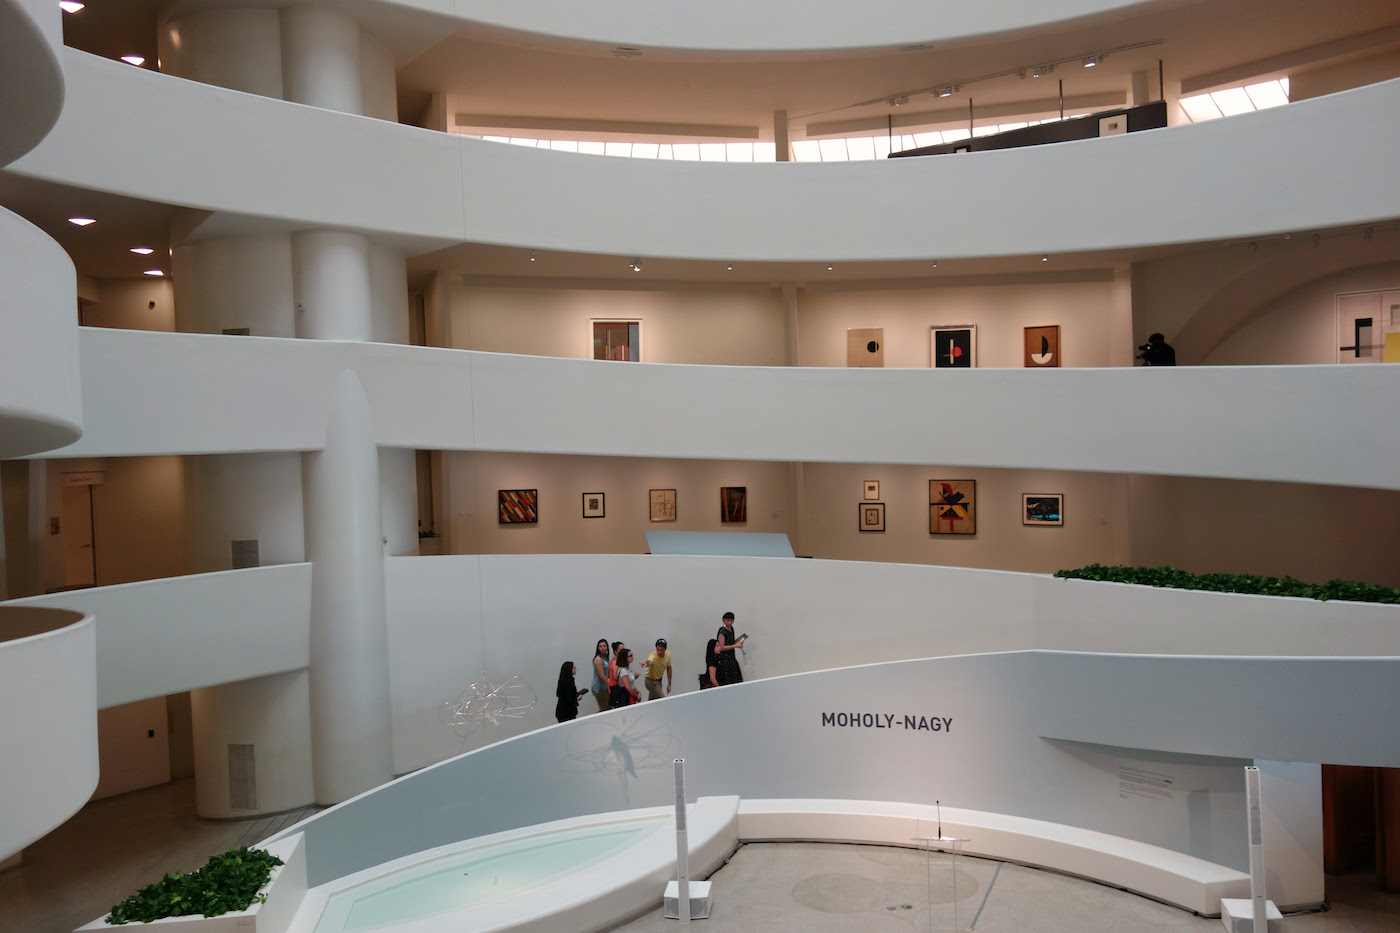 Installation view of 'Moholy-Nagy: Future Present' at the Guggenheim Museum